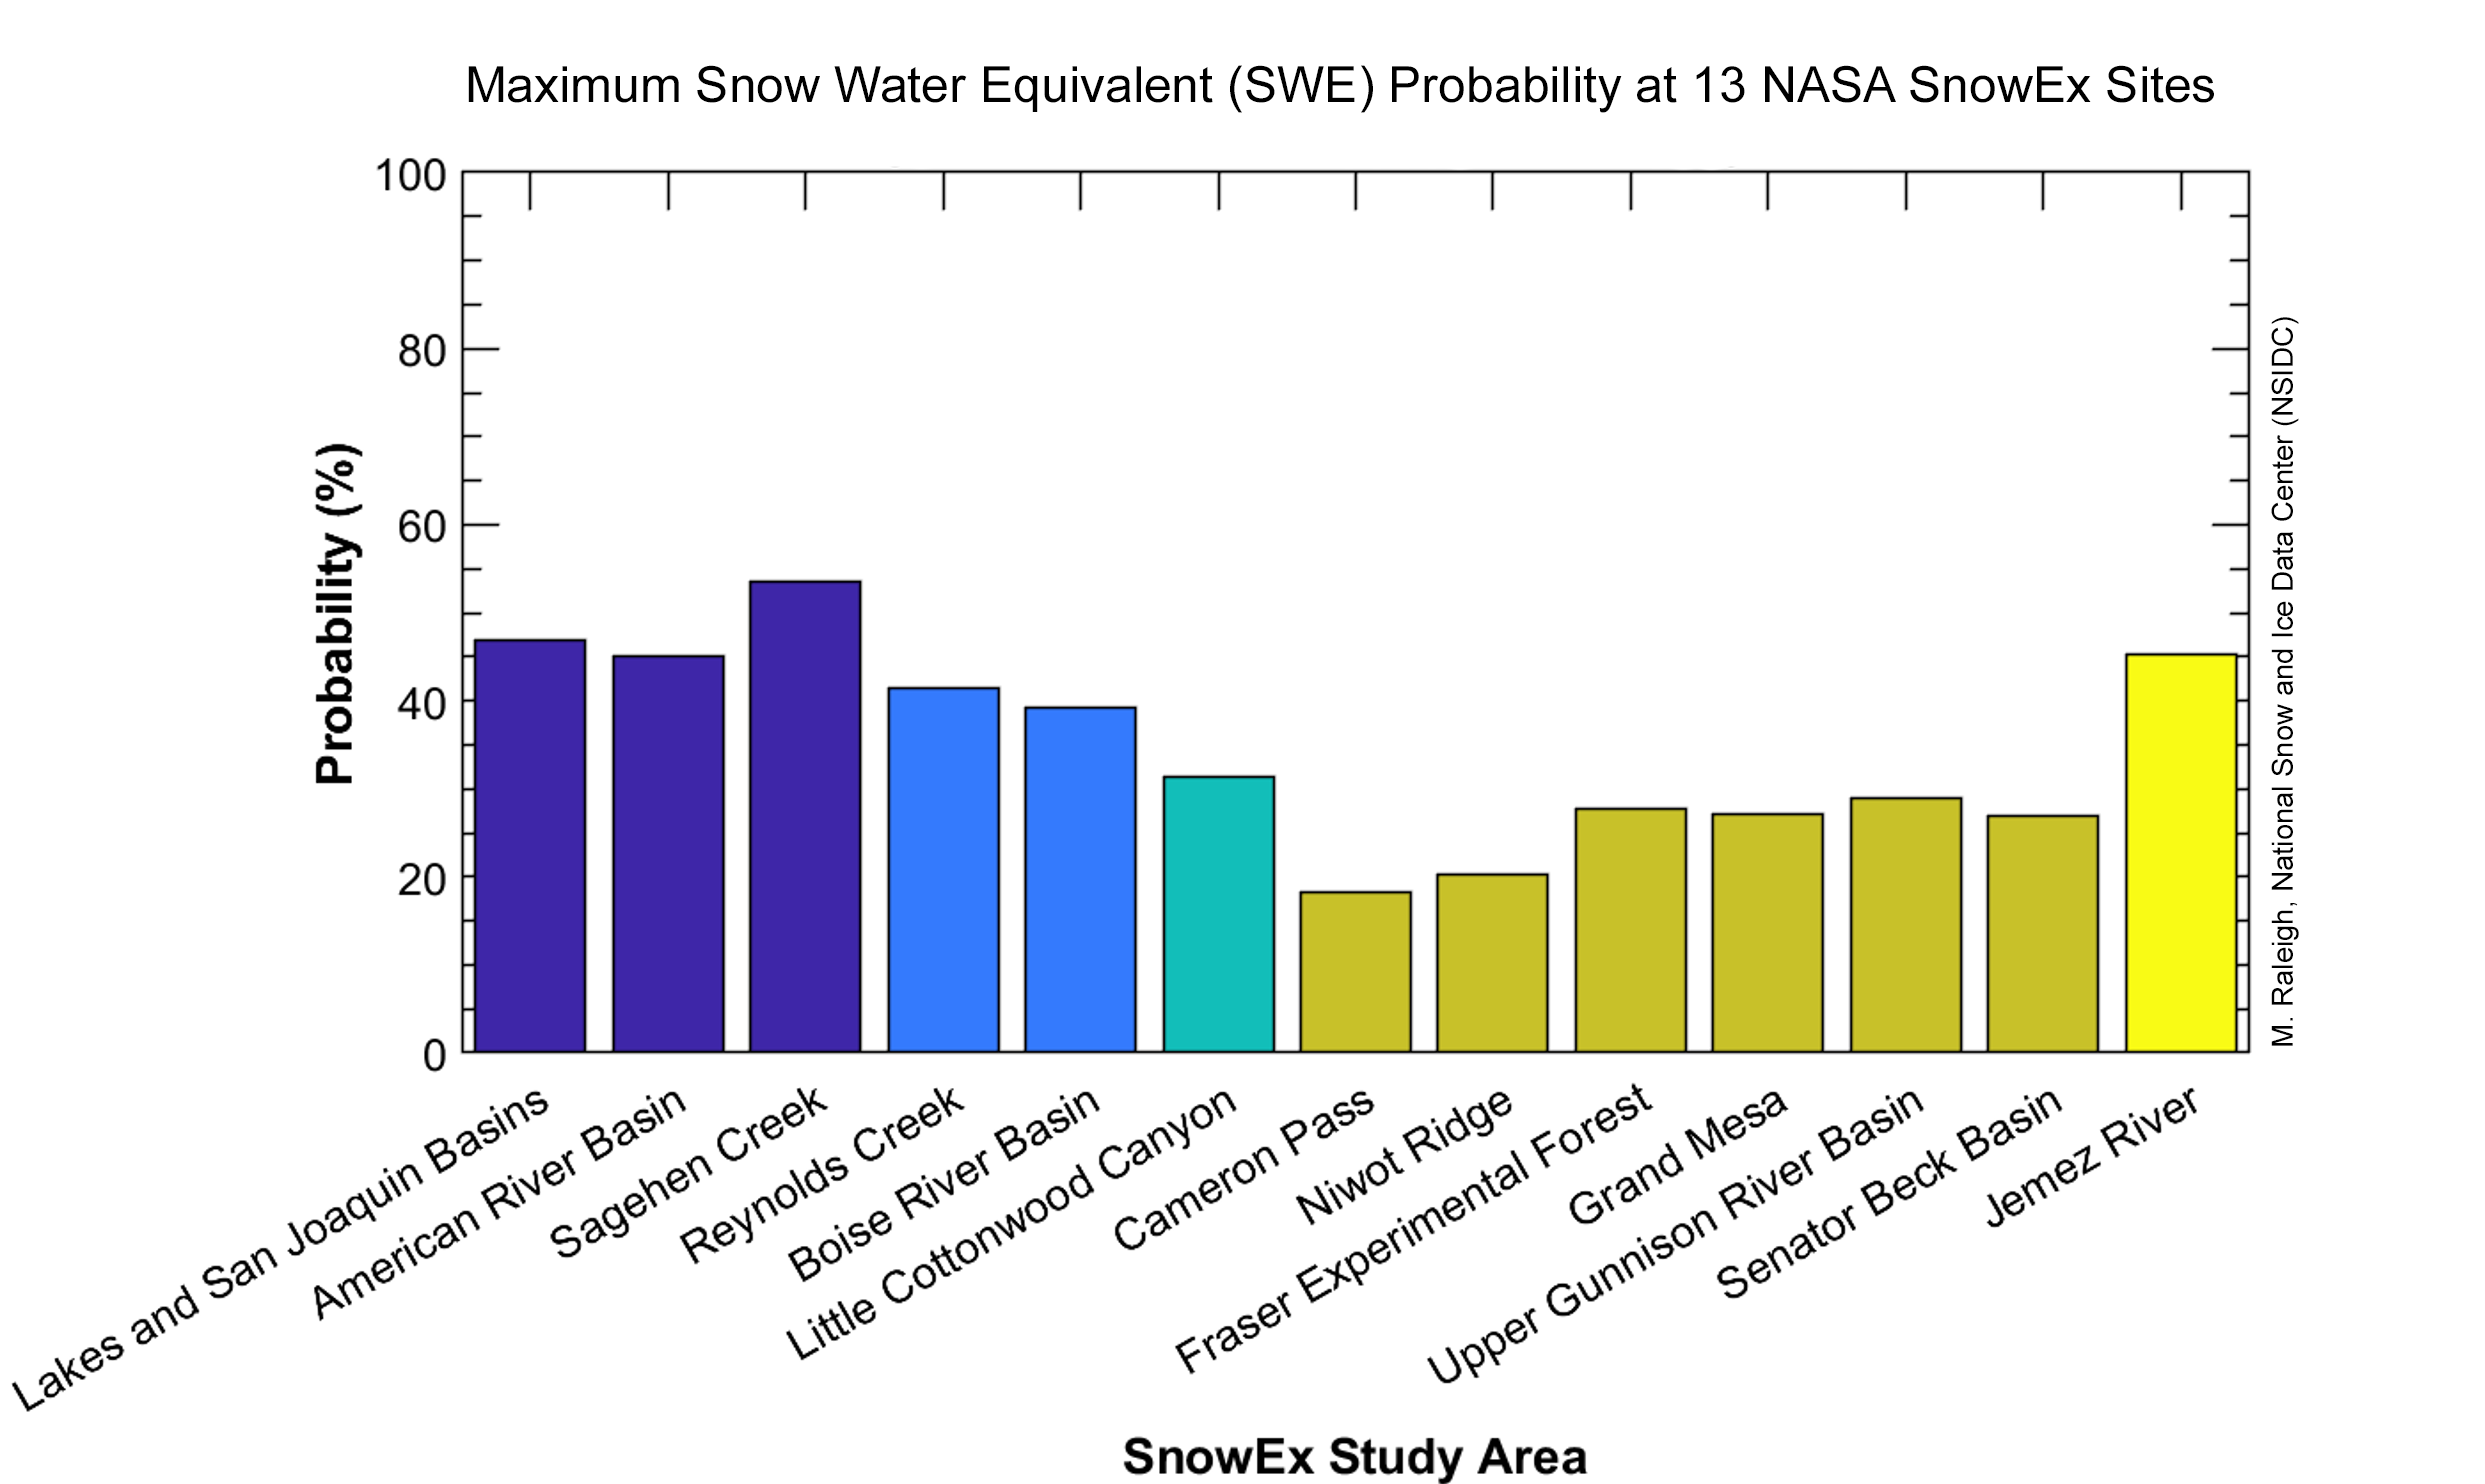 Probability of reaching SWE by April 1, 2020 at 13 NASA SnowEx sites